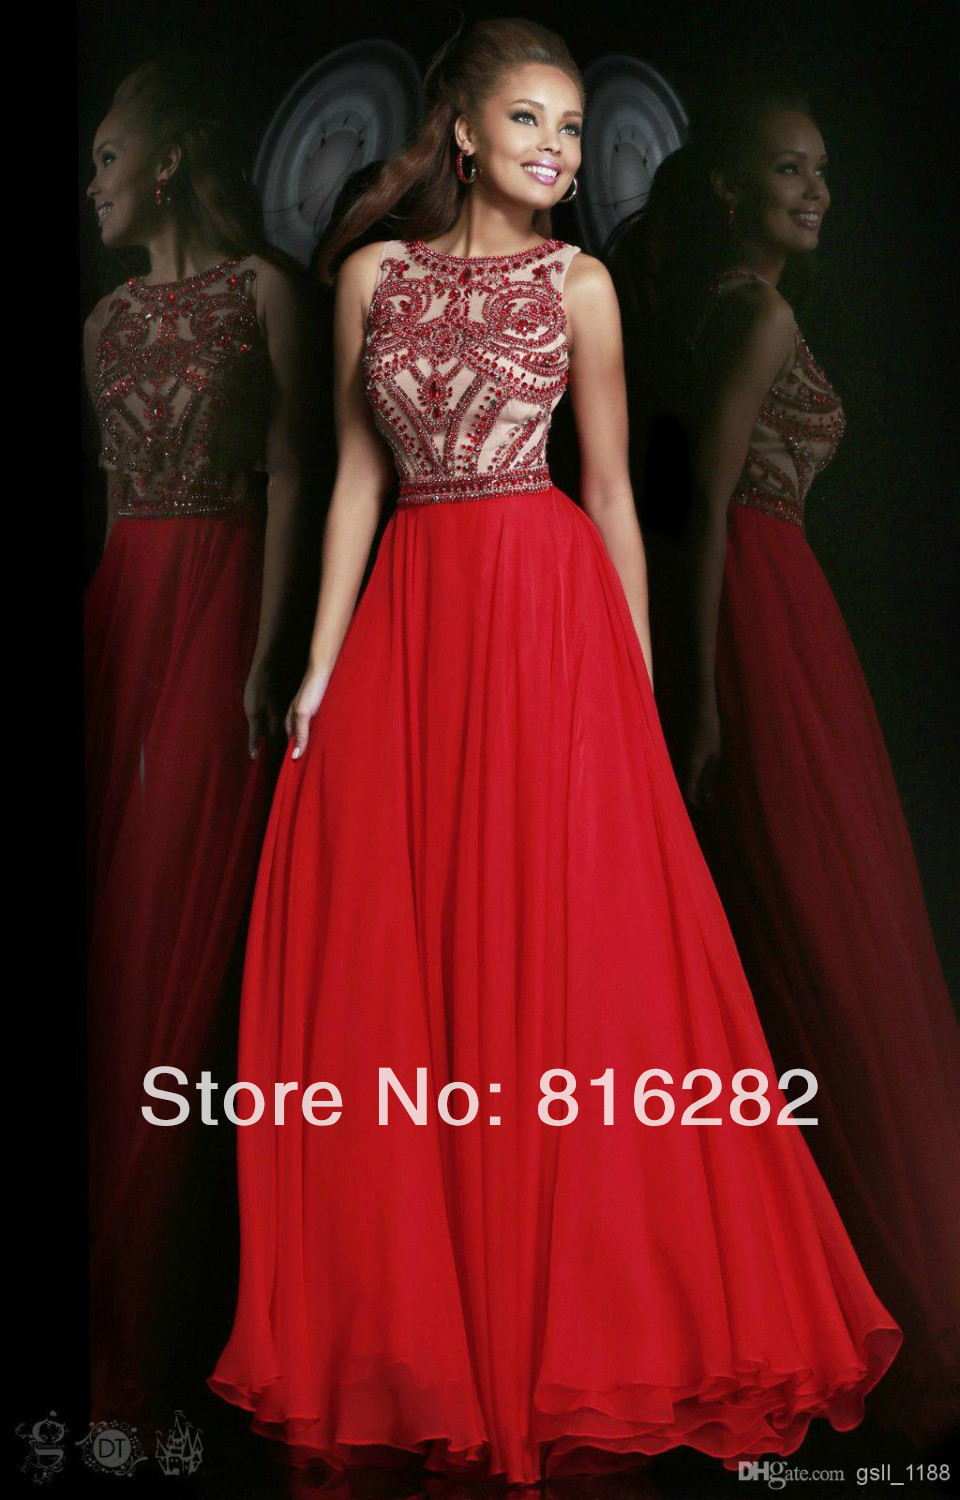 Online Get Cheap Red Prom Dresses 2014 -Aliexpress.com | Alibaba Group